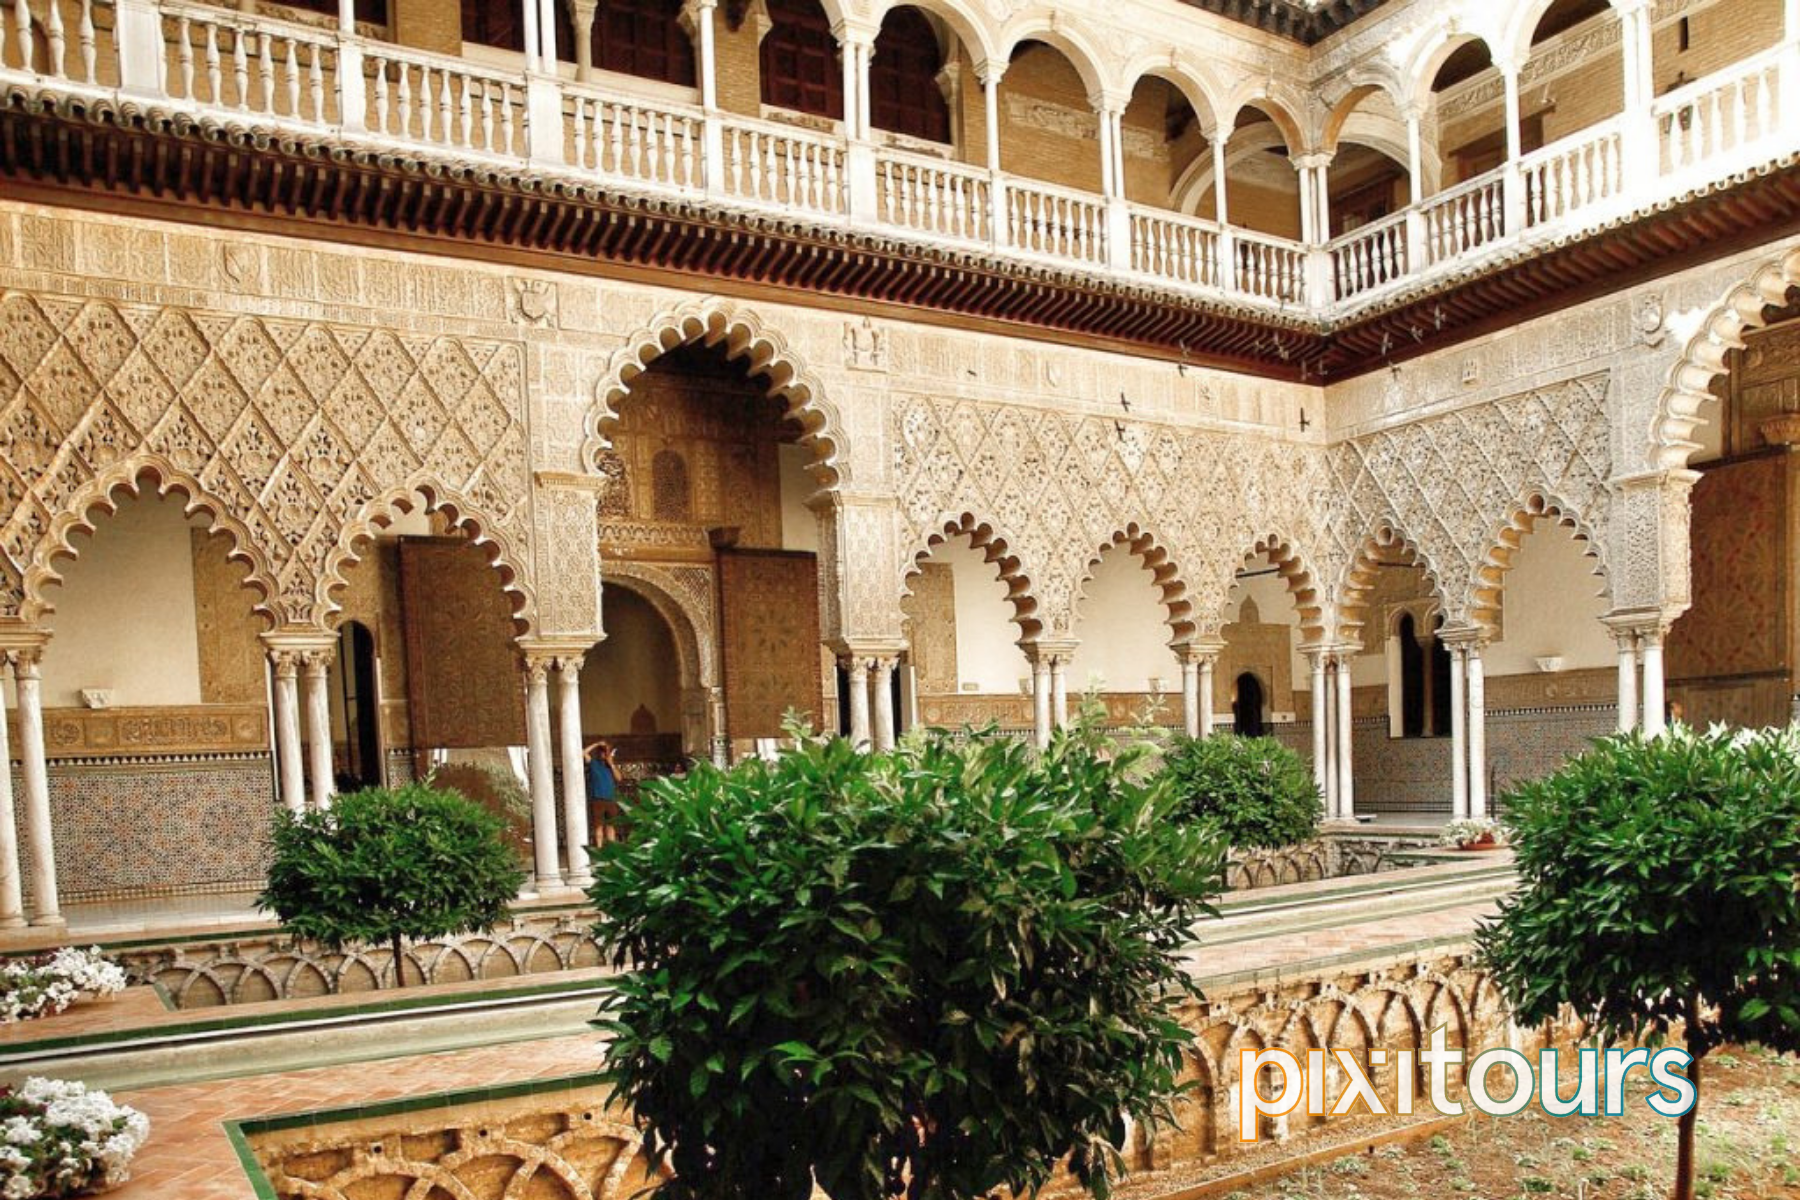 The inside view of the Alcazar Palace